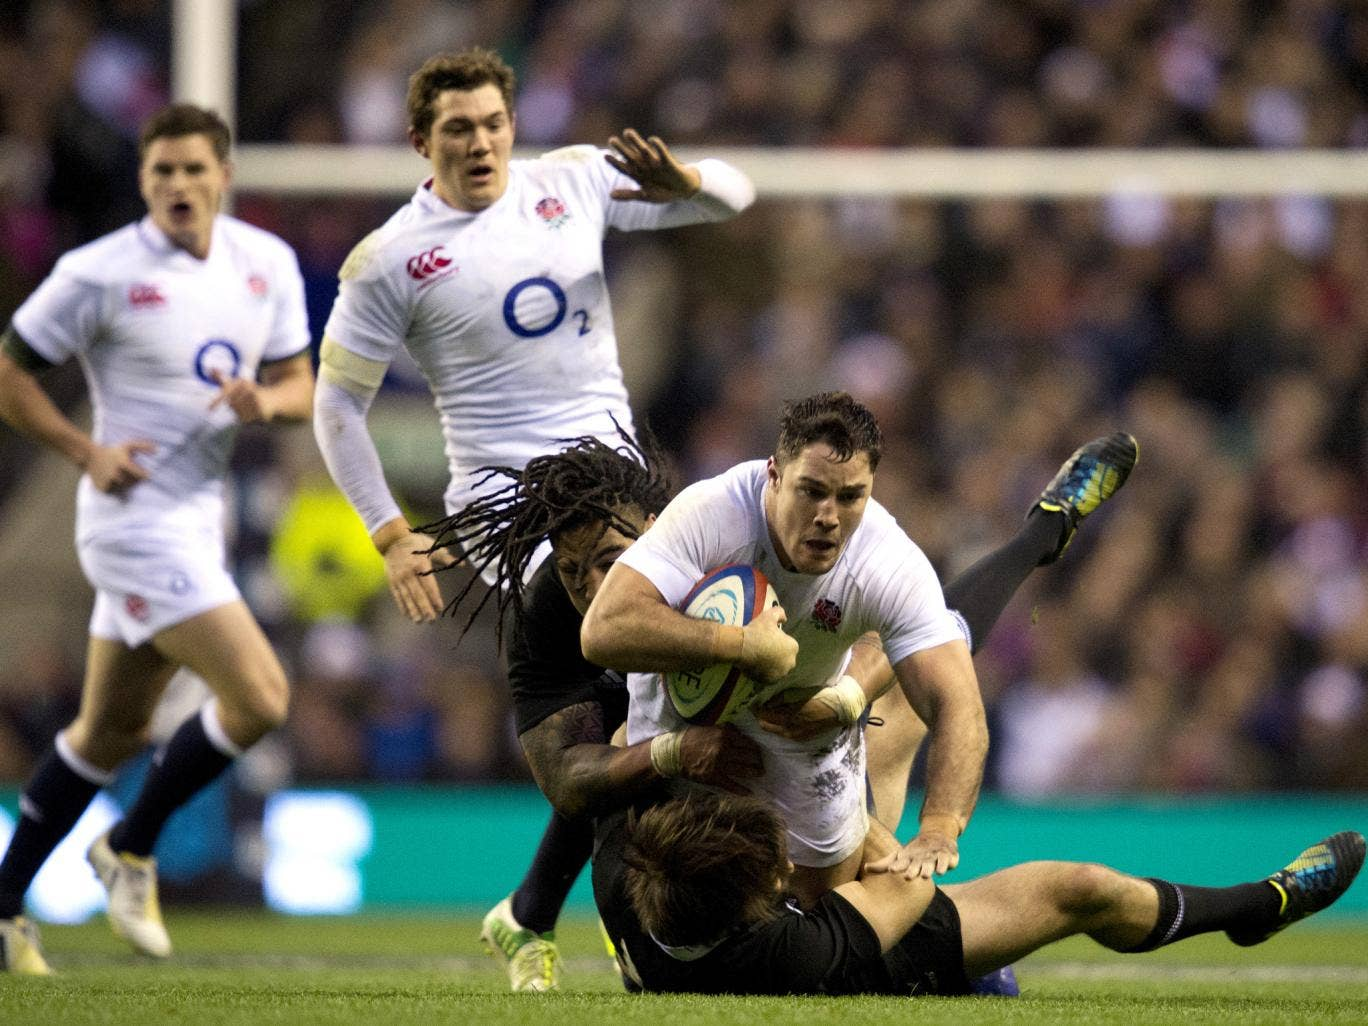 Brad Barritt in action for England against New Zealand at Twickenham in 2012